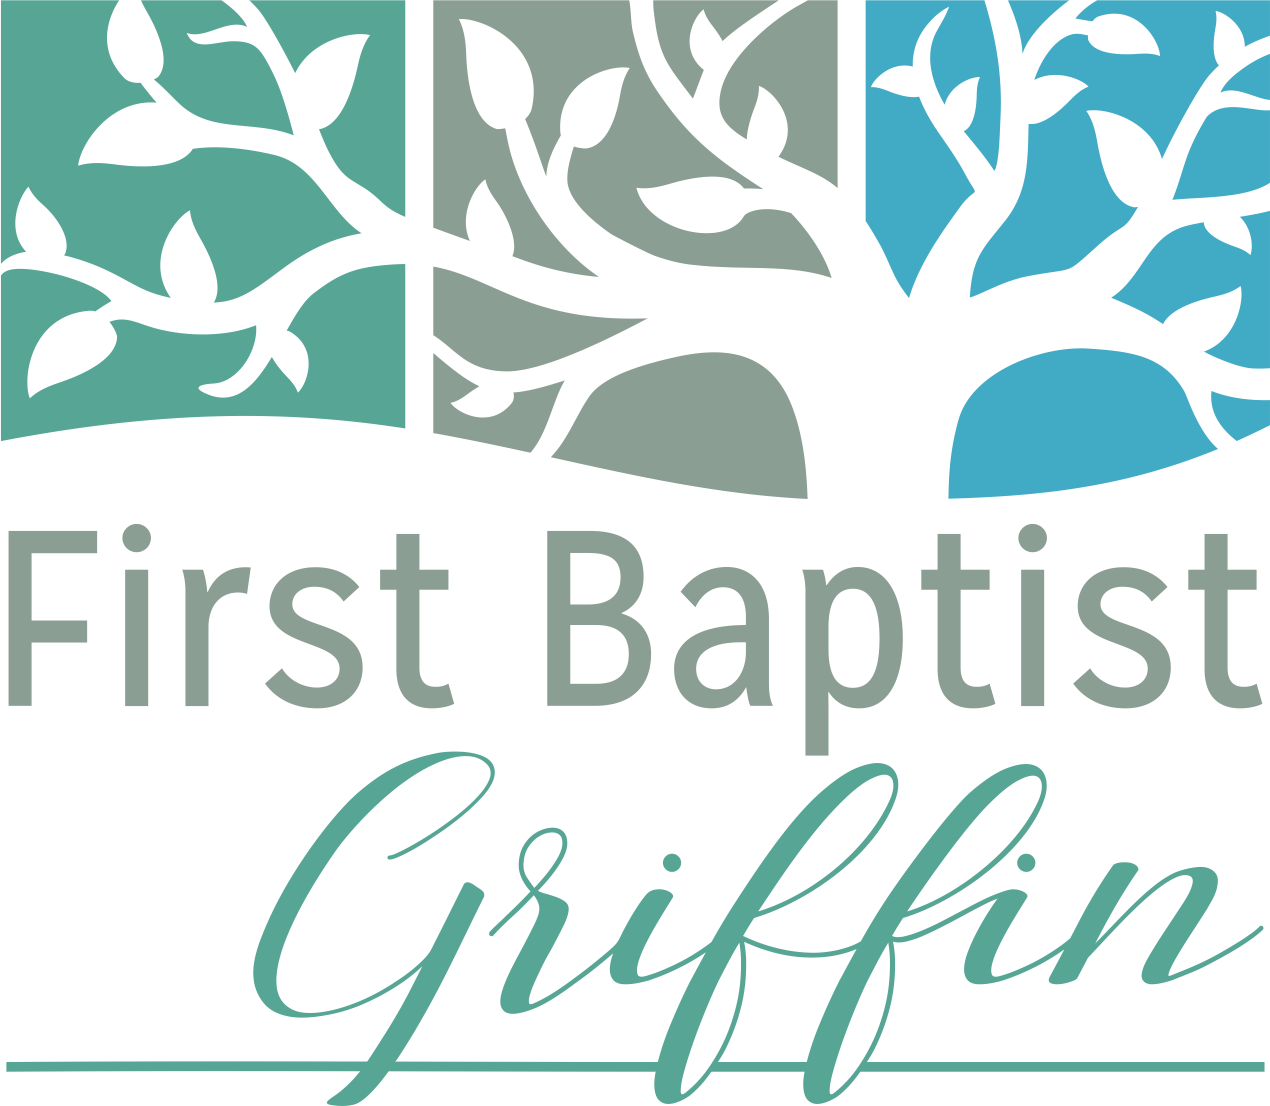 First Baptist Church of Griffin